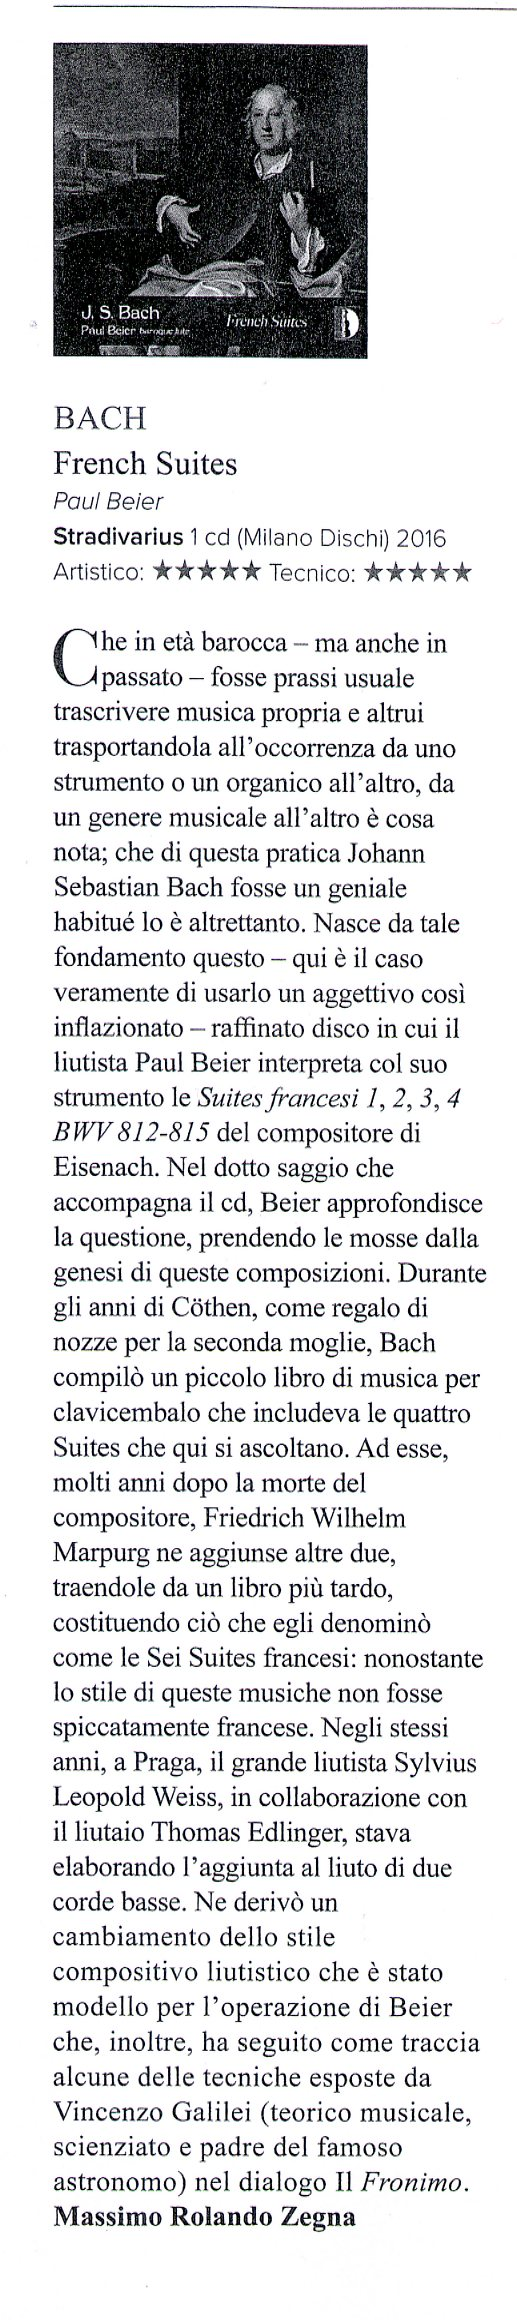 Review of Paul Beier, Bach French Suites, in Amadeus October 2017